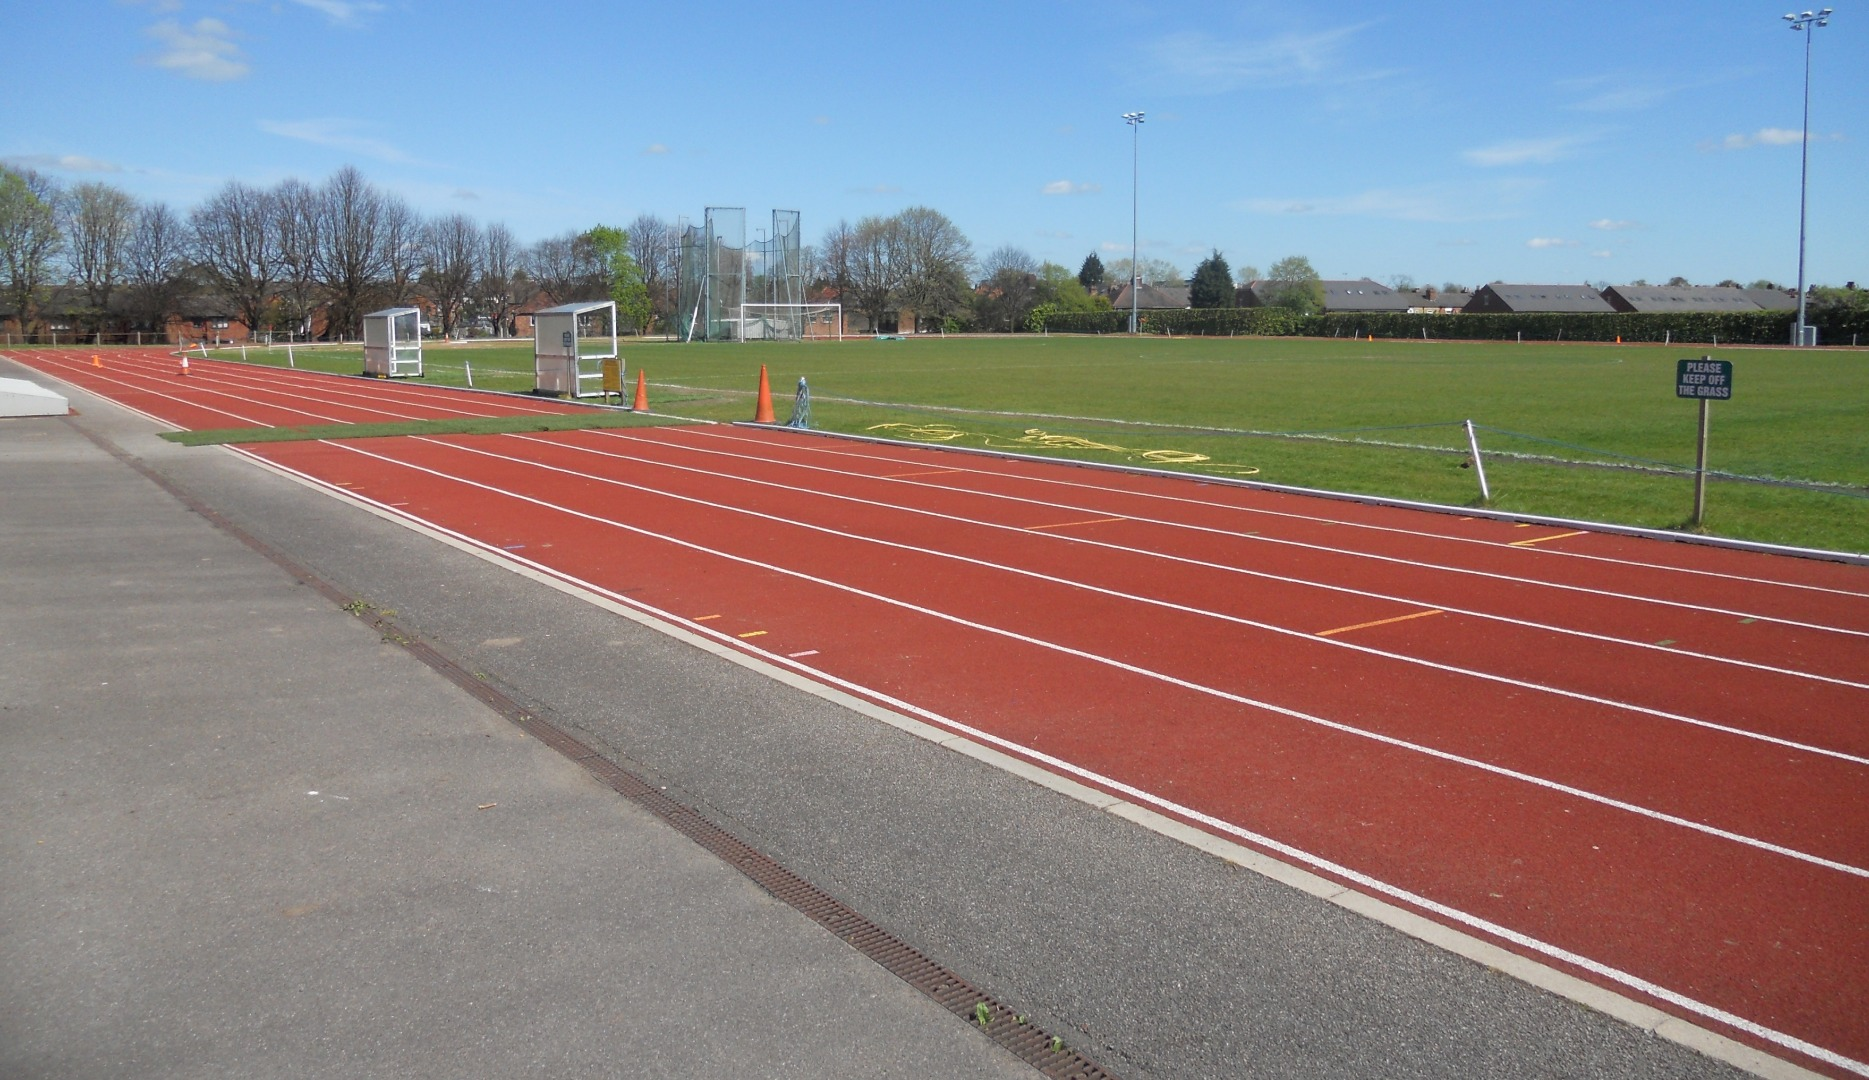 Cheshire East to look at athletics track improvements